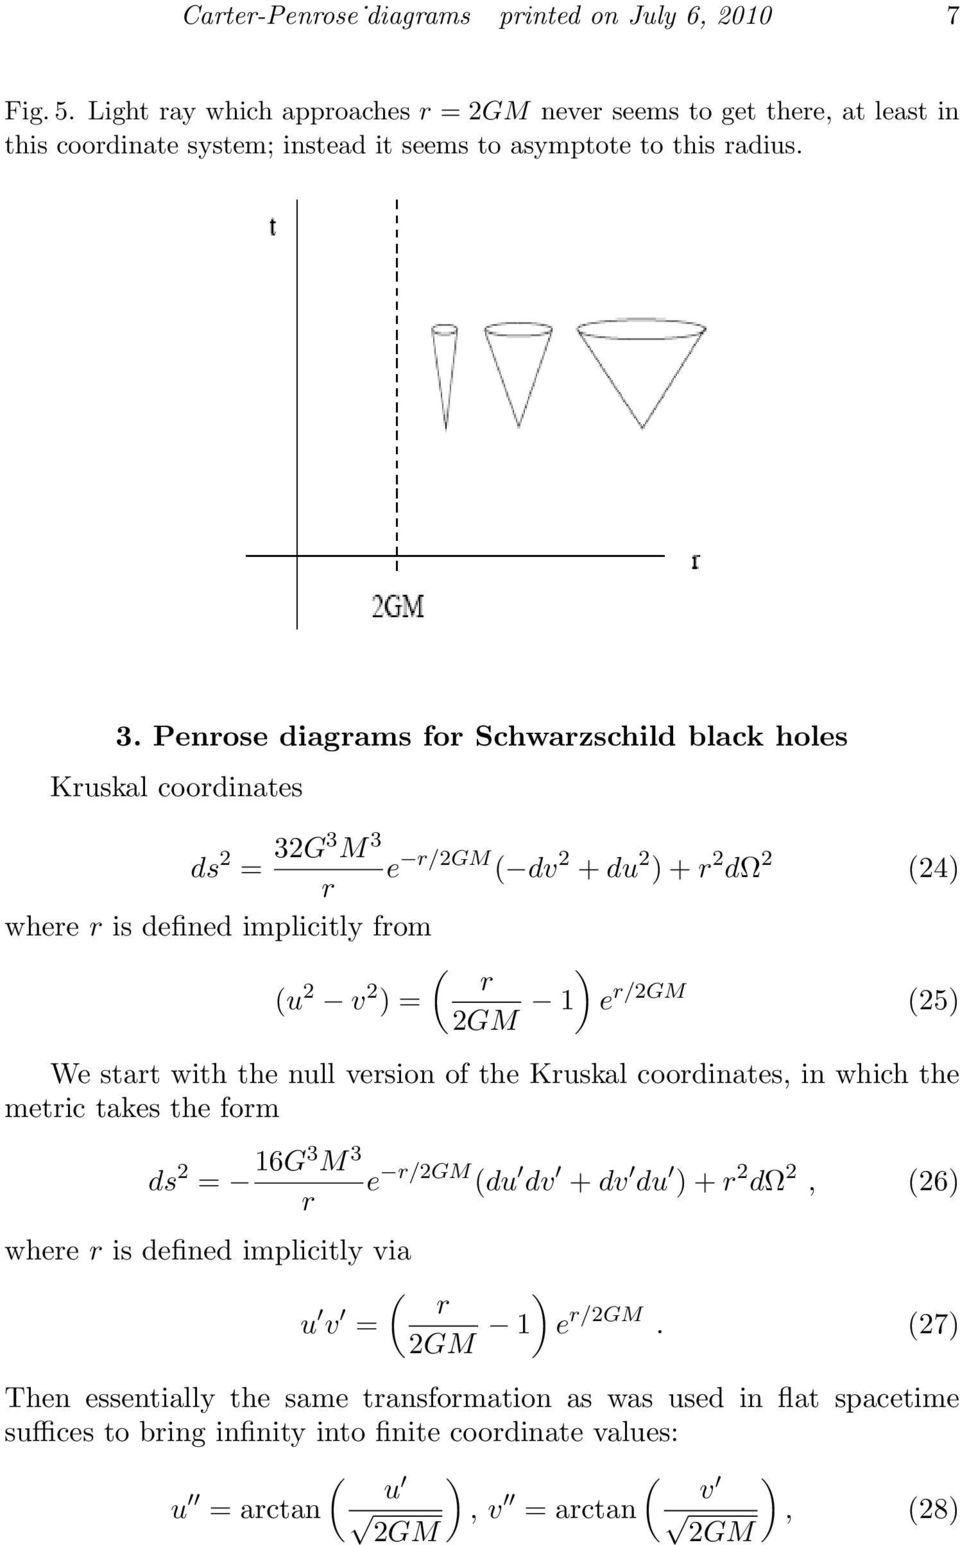 Penose diagams fo Schwazschild black holes Kuskal coodinates ds 2 = 32G3 M 3 e /2GM dv 2 + du 2 ) + 2 dω 2 24) whee is defined implicitly fom ) u 2 v 2 ) = 2GM 1 e /2GM 25) We stat